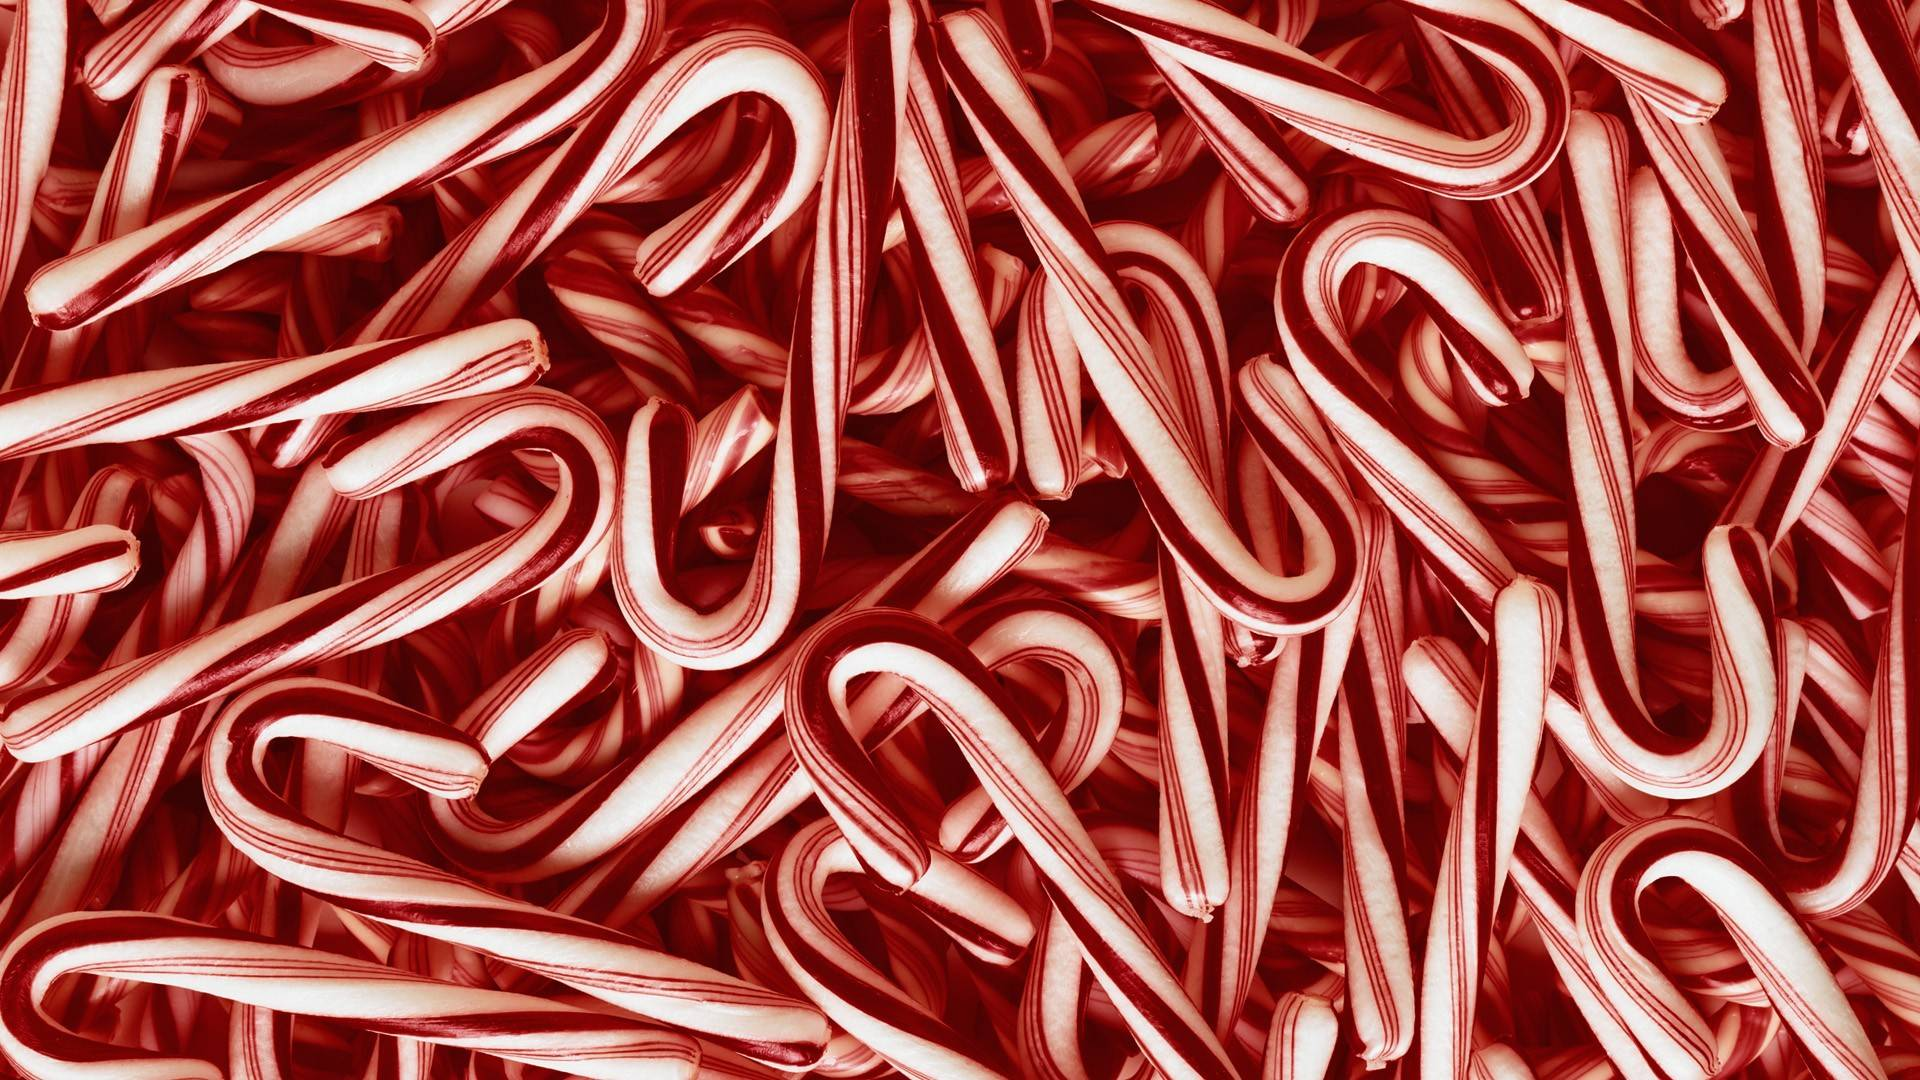 Candy Canes 1920x1080 Wallpaper 1666040